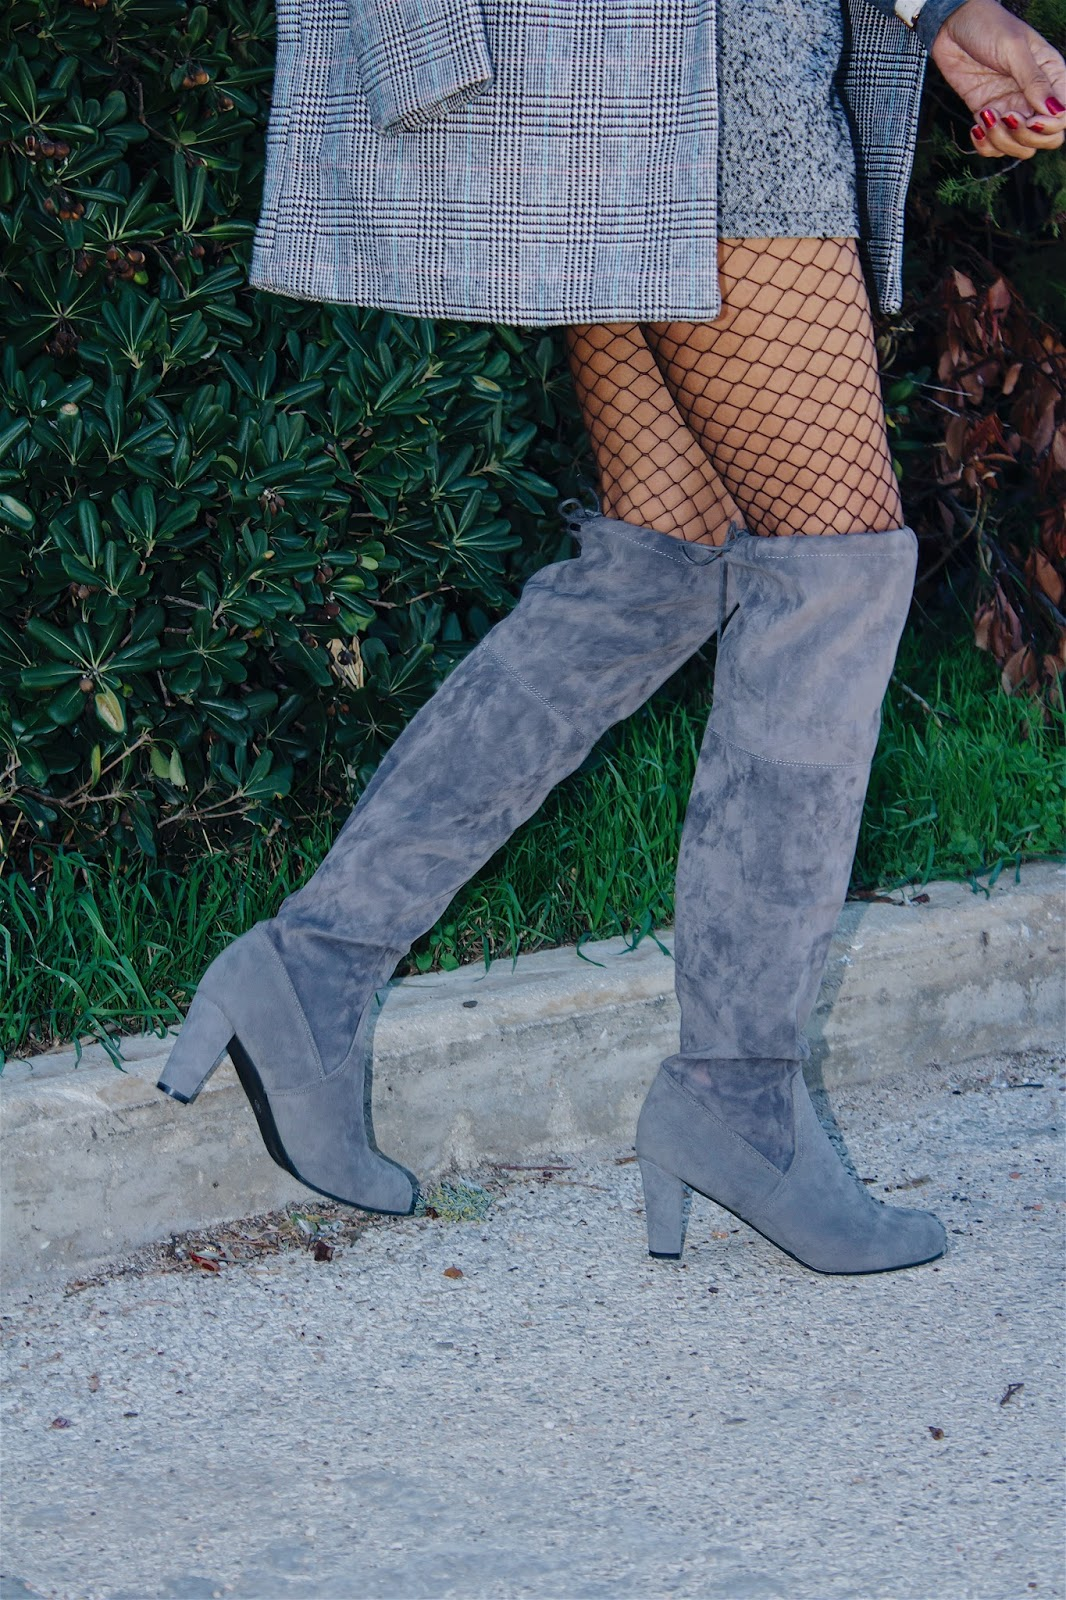 f5bee8c91d1 Shop my TIED BACK KNEE-HIGH BOOTS at Chicme and more. Happy Shopping!!  Thank you for reading!!xoxo. Be YOU. Be FABULOUS